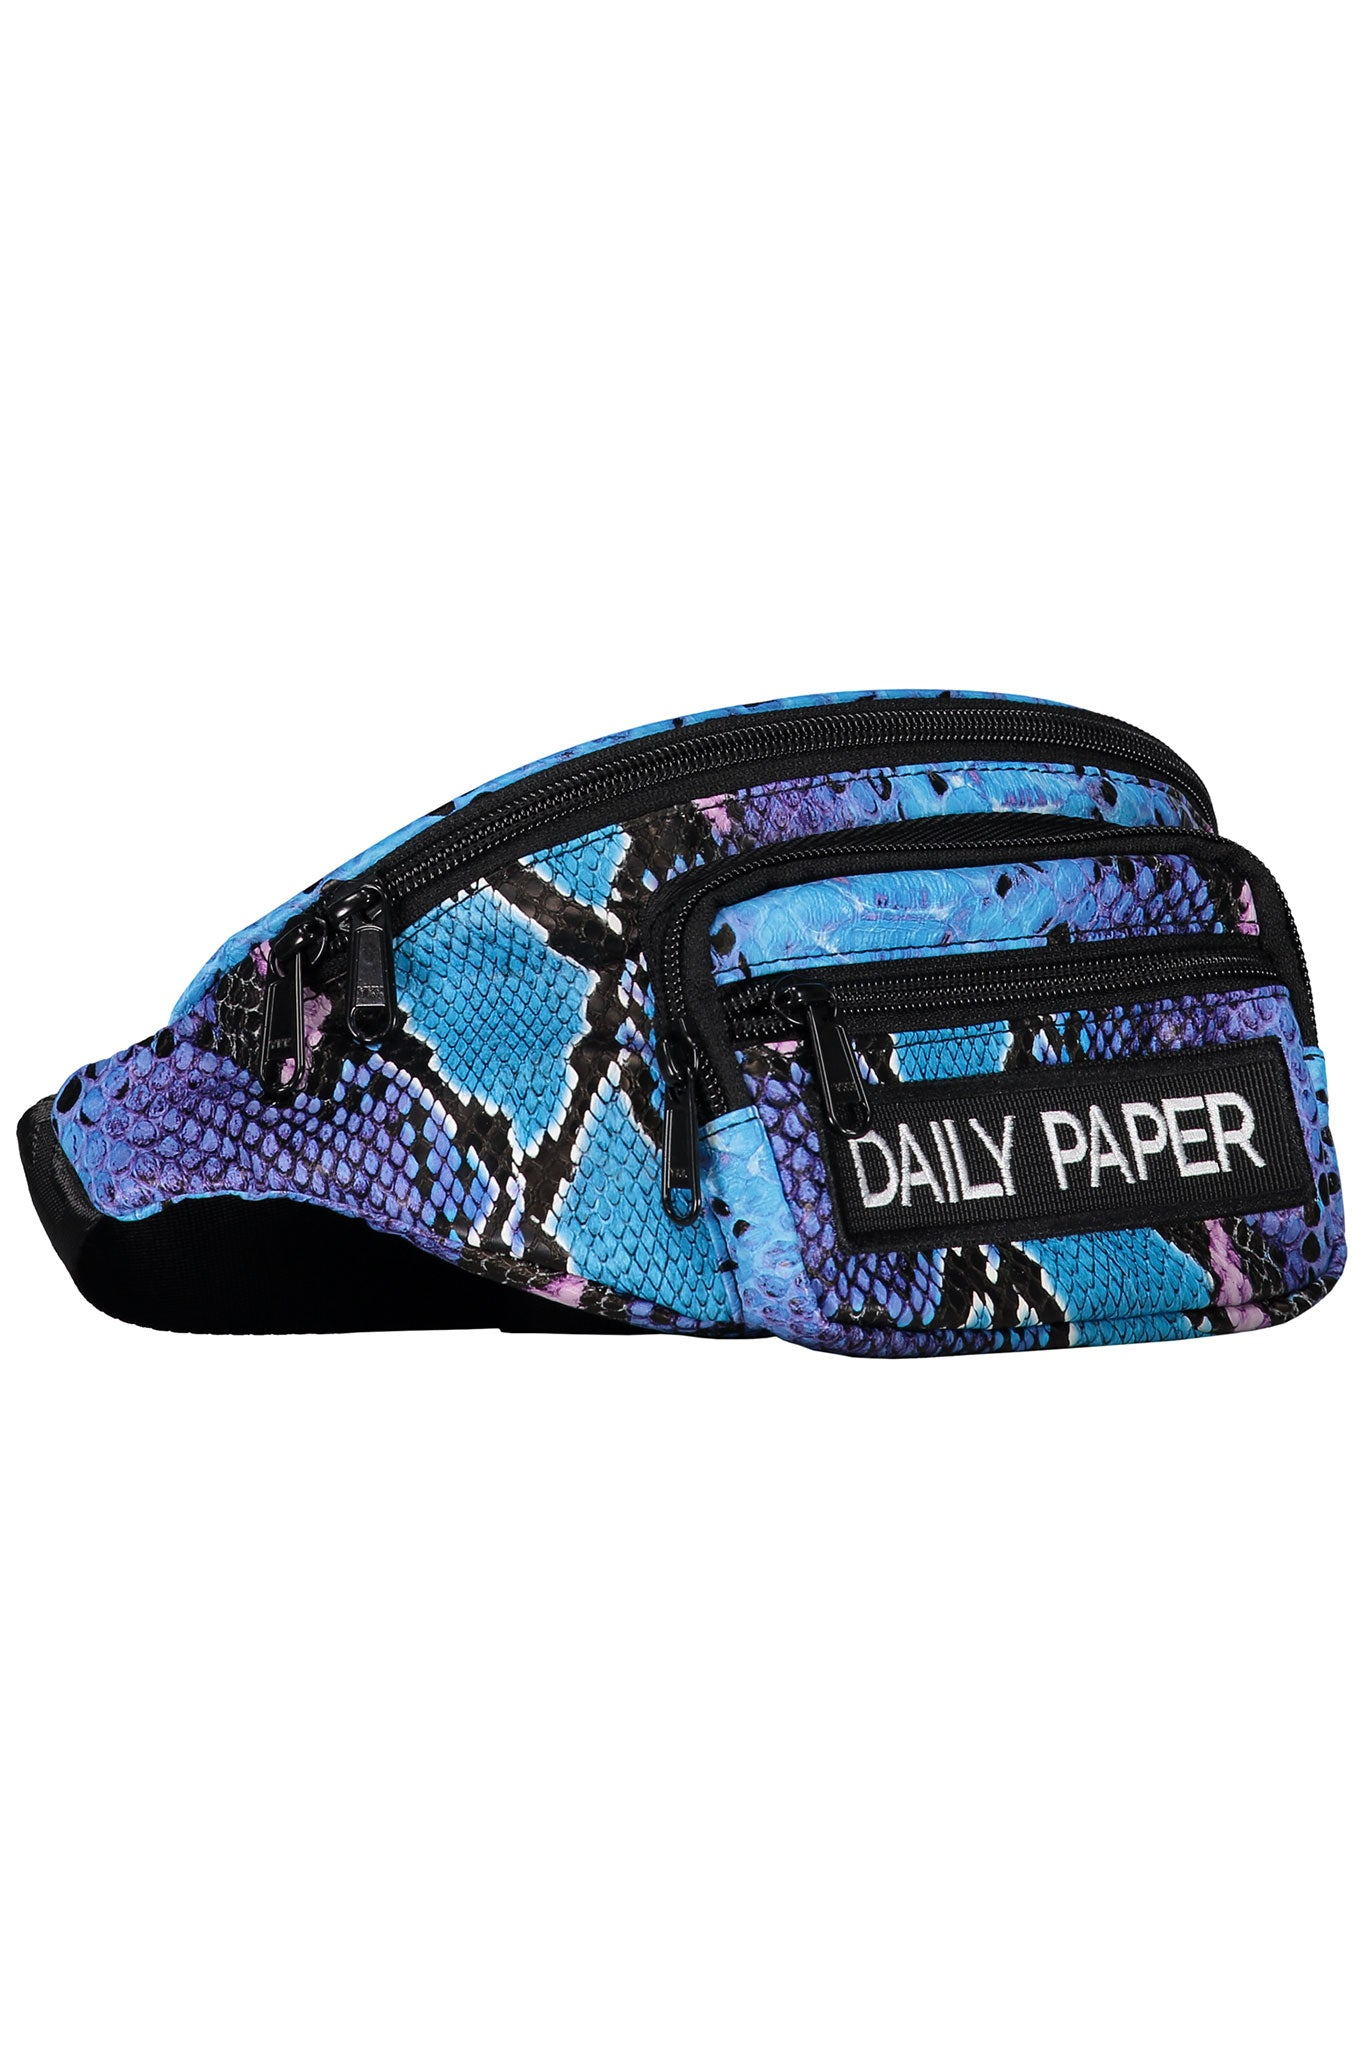 Daily Paper Blue Crocodile Bumbag Waist Belt